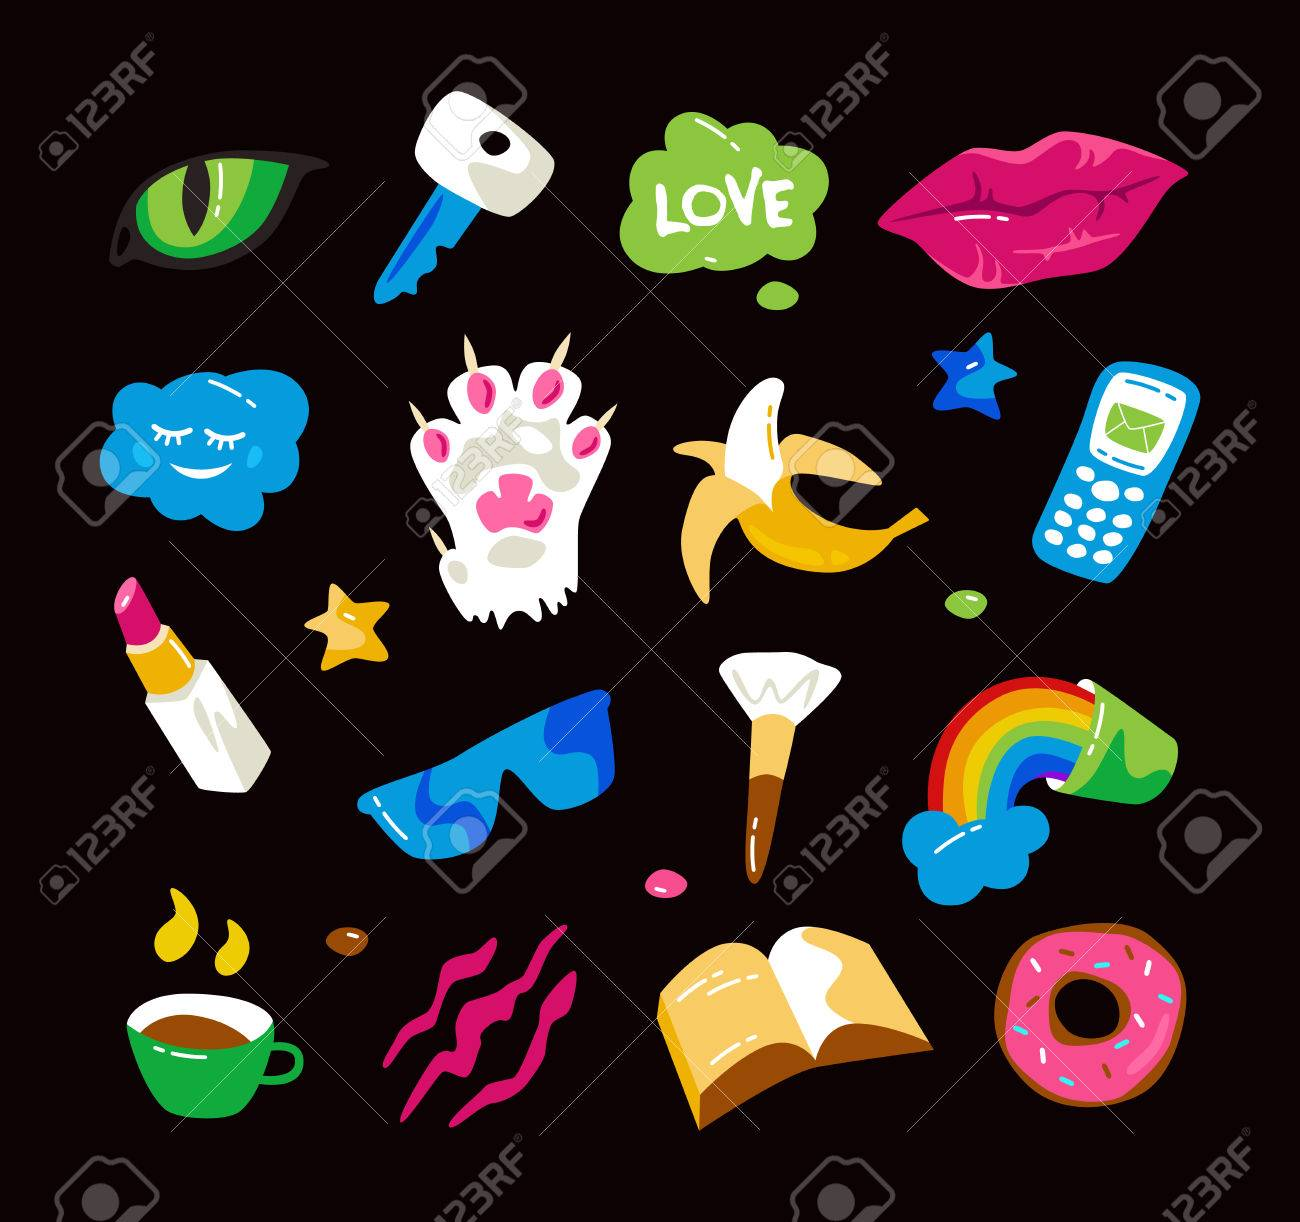 Fashion stickers with lips, cat paw, cat eye and other elements. Colorful graphics in hand drawings style. Isolated on black background Stock Vector - 75529782